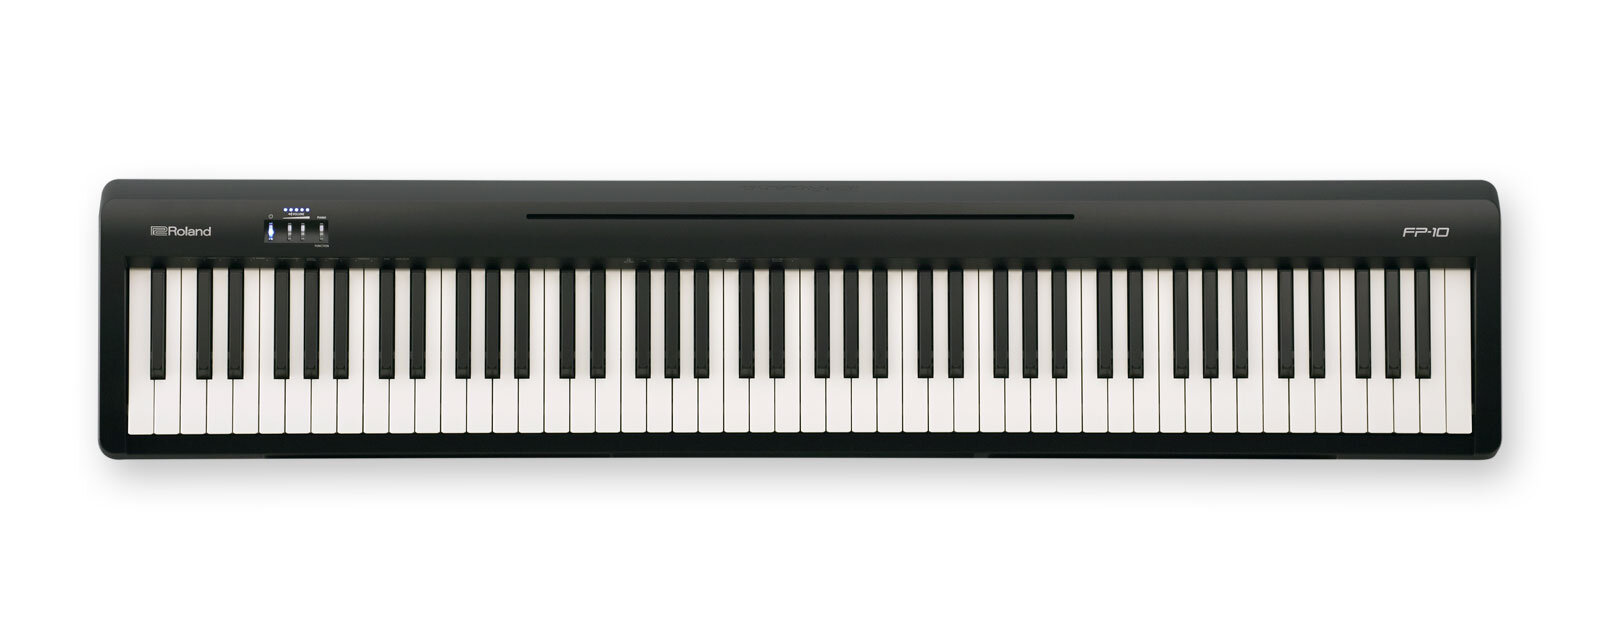 Roland FP 10 | 88-Key Digital Piano, Portable, Ideal for home use & practice, Black | Ireland | Reynolds of Raphoe